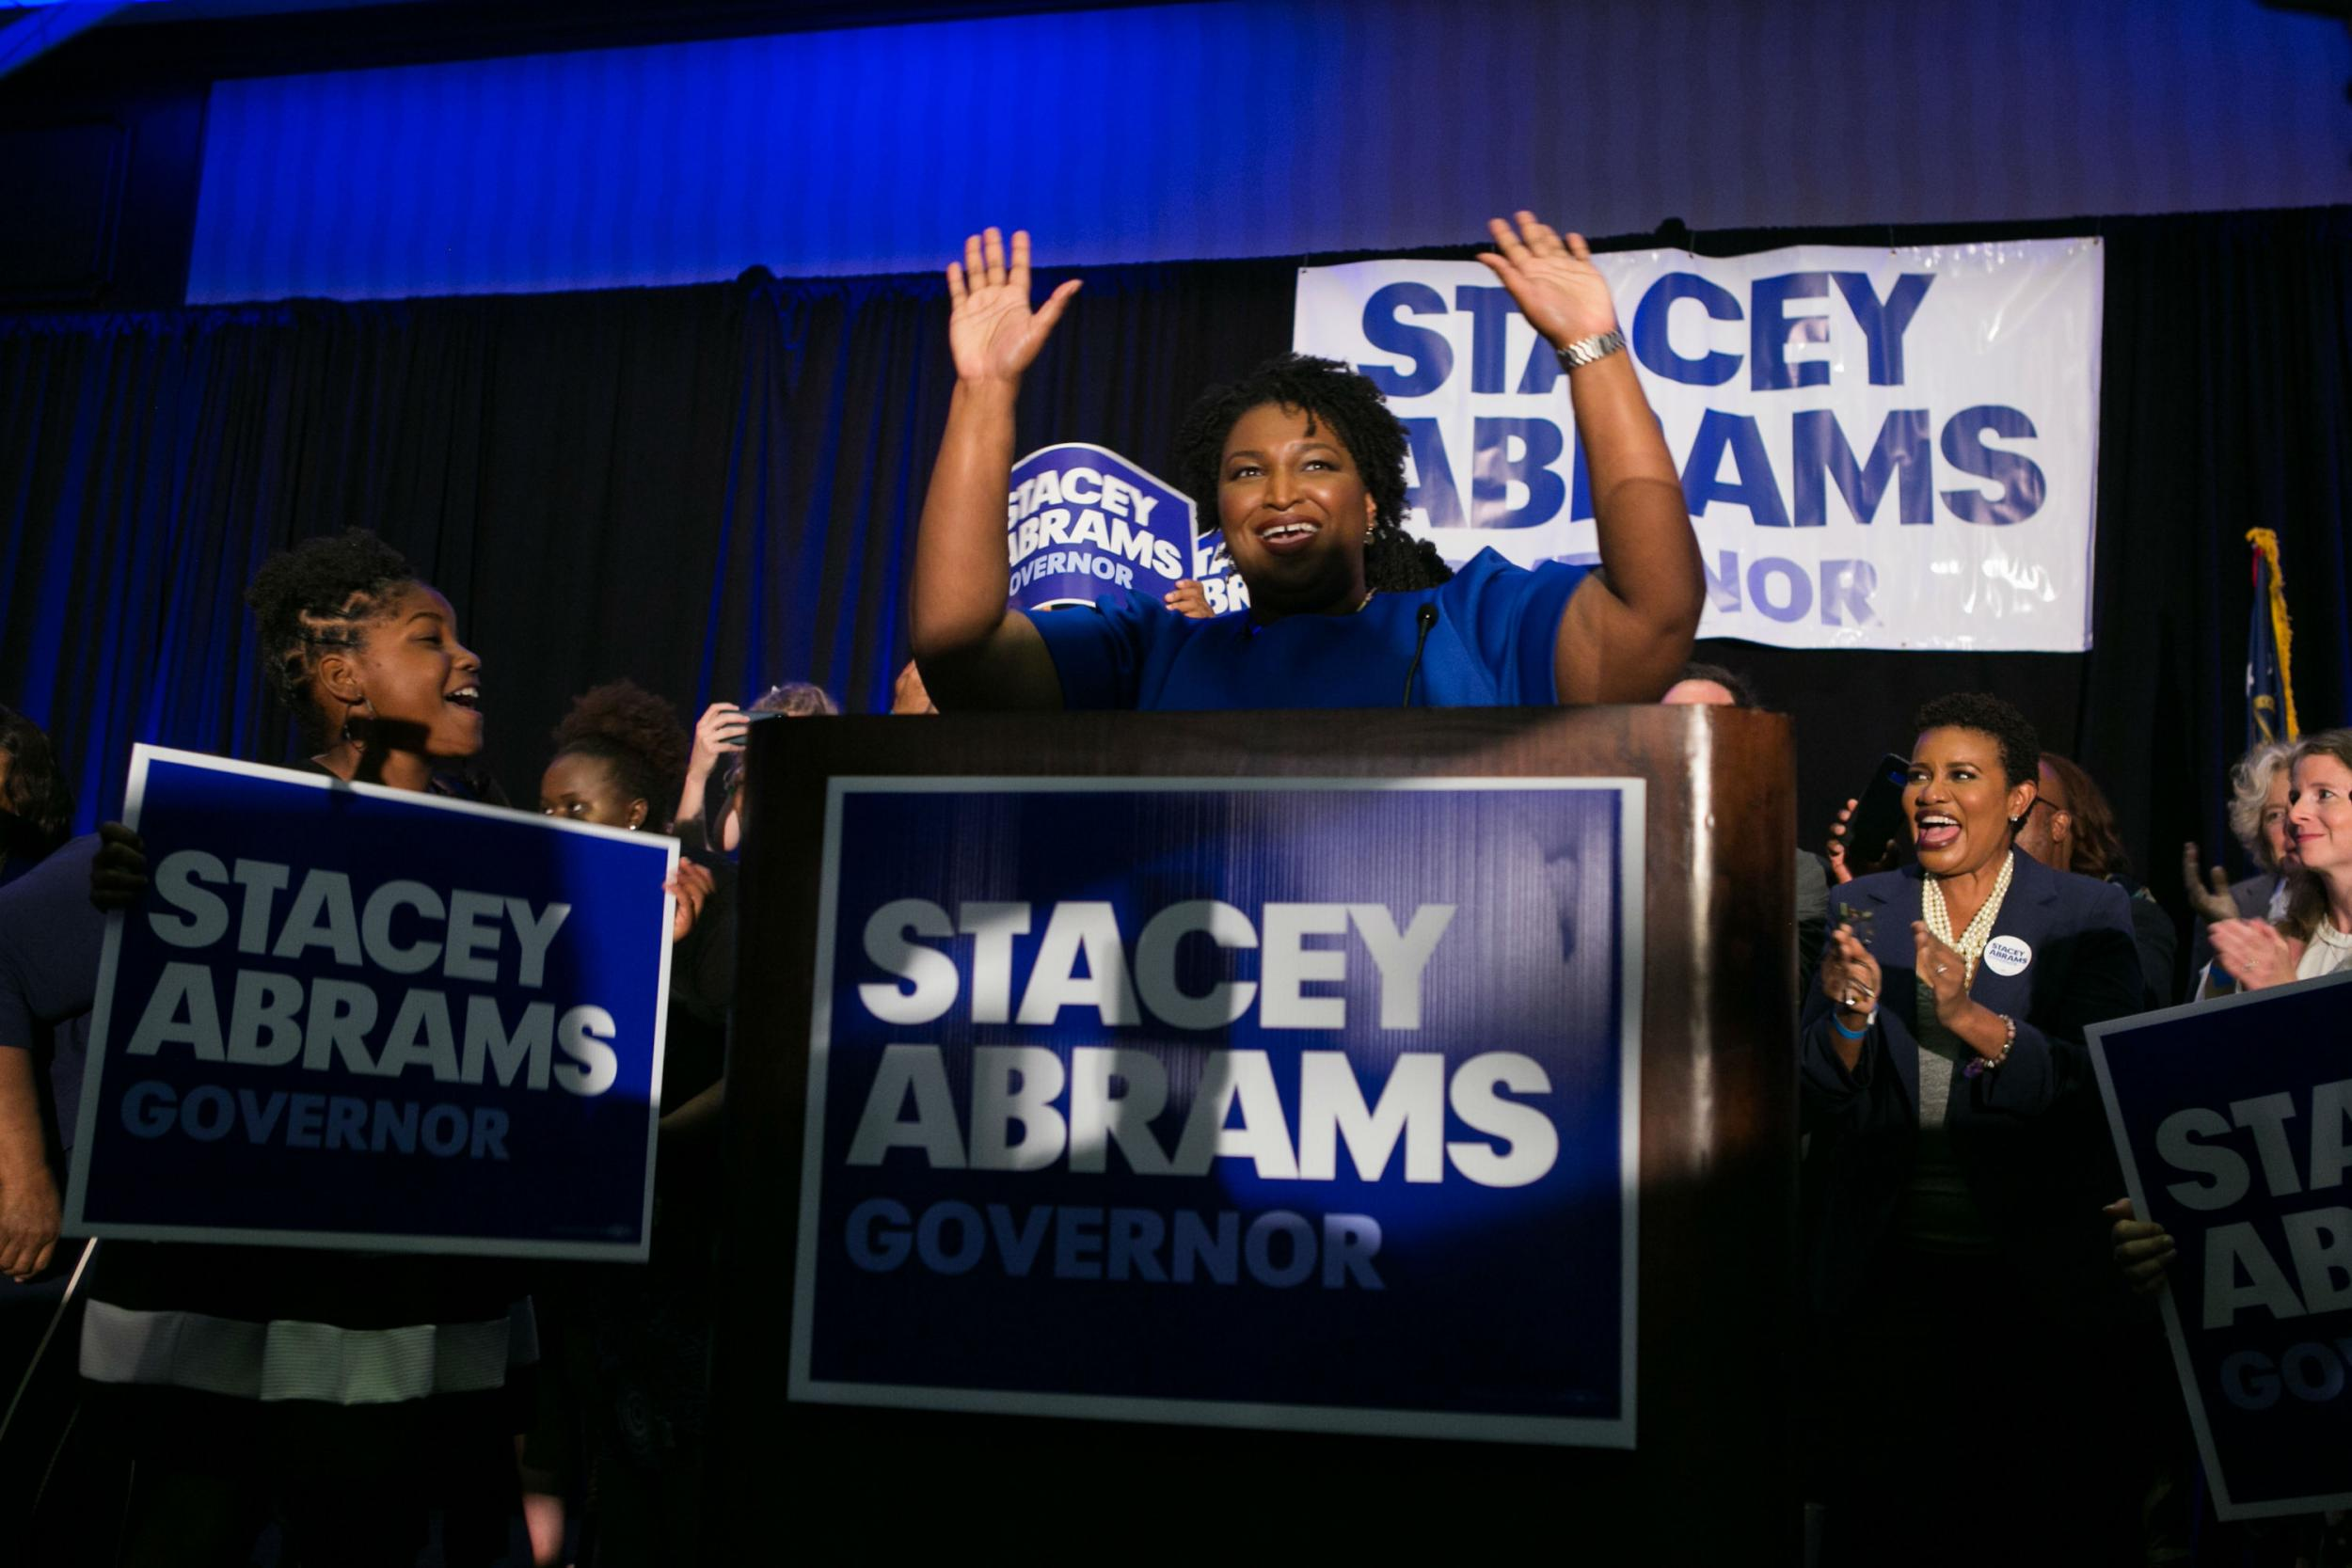 History made as Democrats choose first black woman and first openly lesbian governor candidates